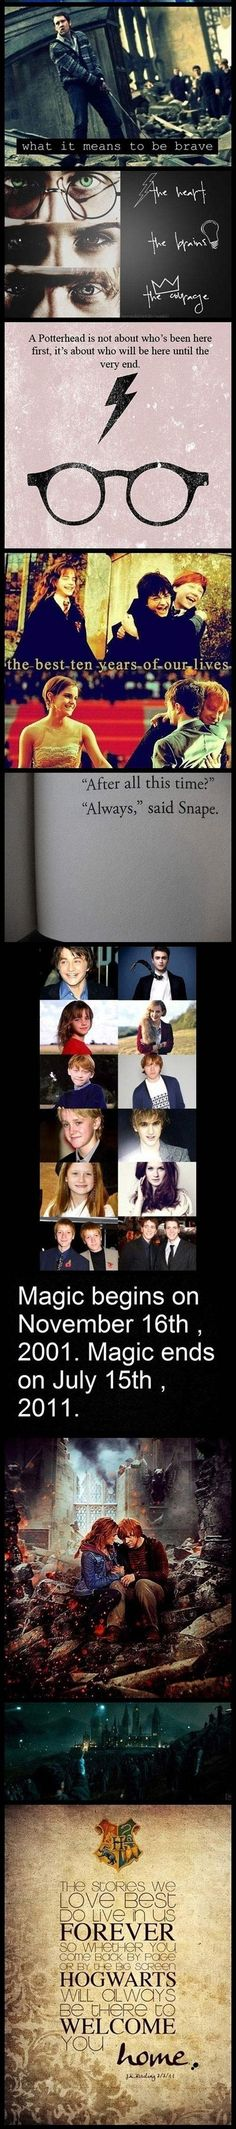 Harry Potter will always have my heart <3